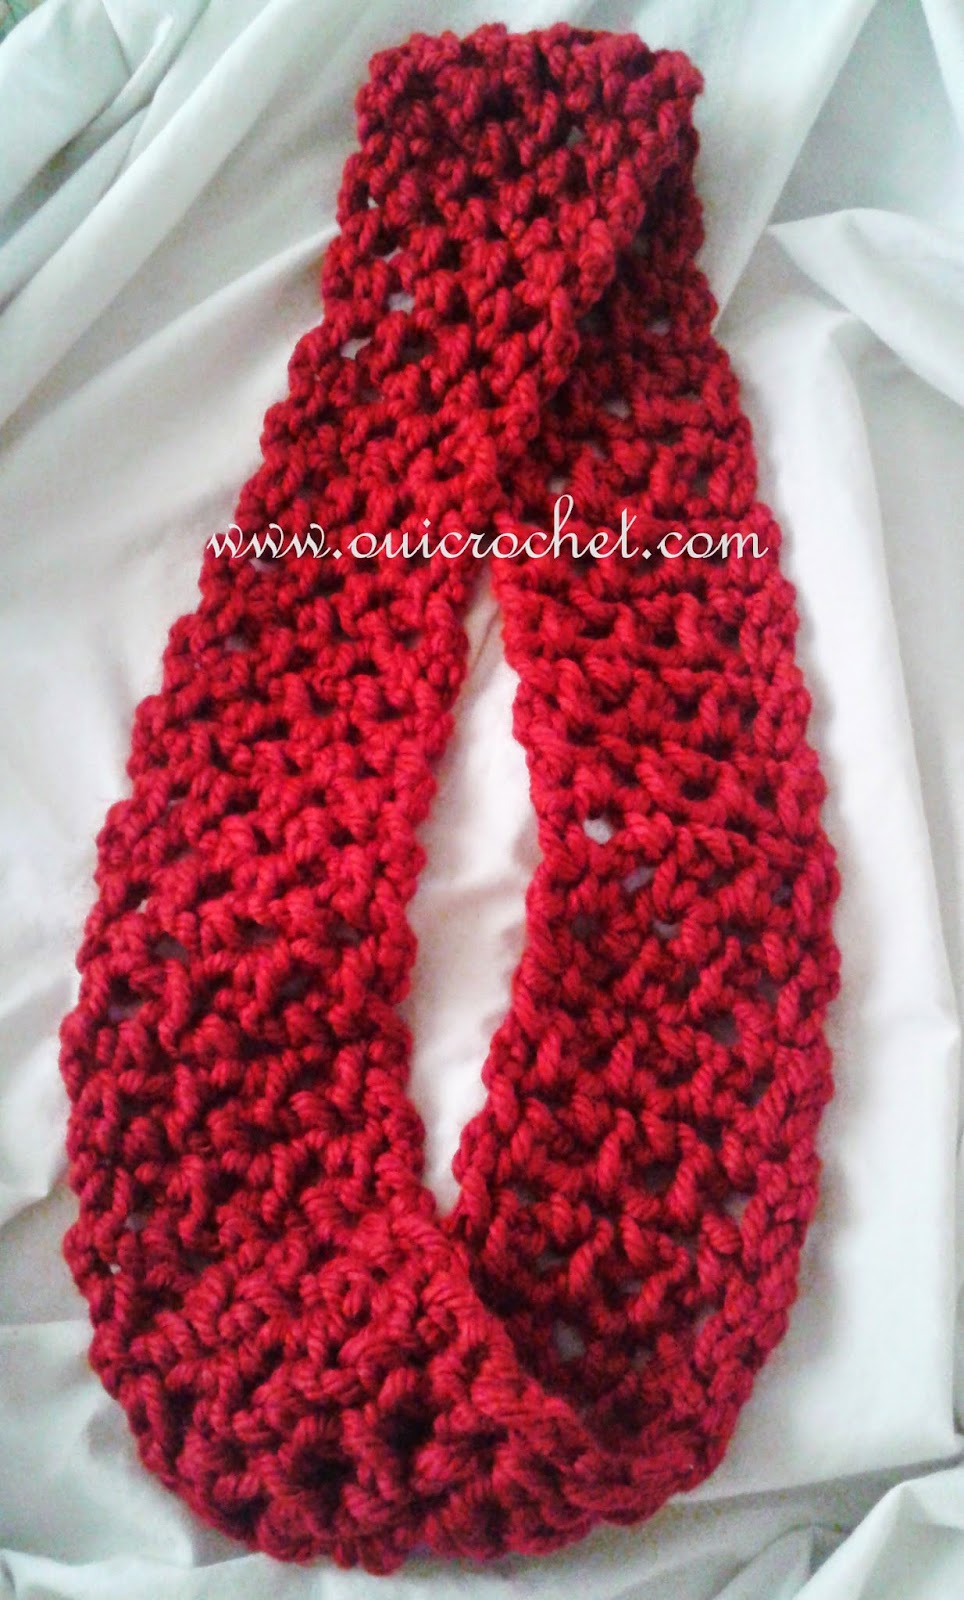 Free Crochet Scarf Patterns For Bulky Yarn : Oui Crochet: Quick Infinity Scarf {Free Crochet Pattern}